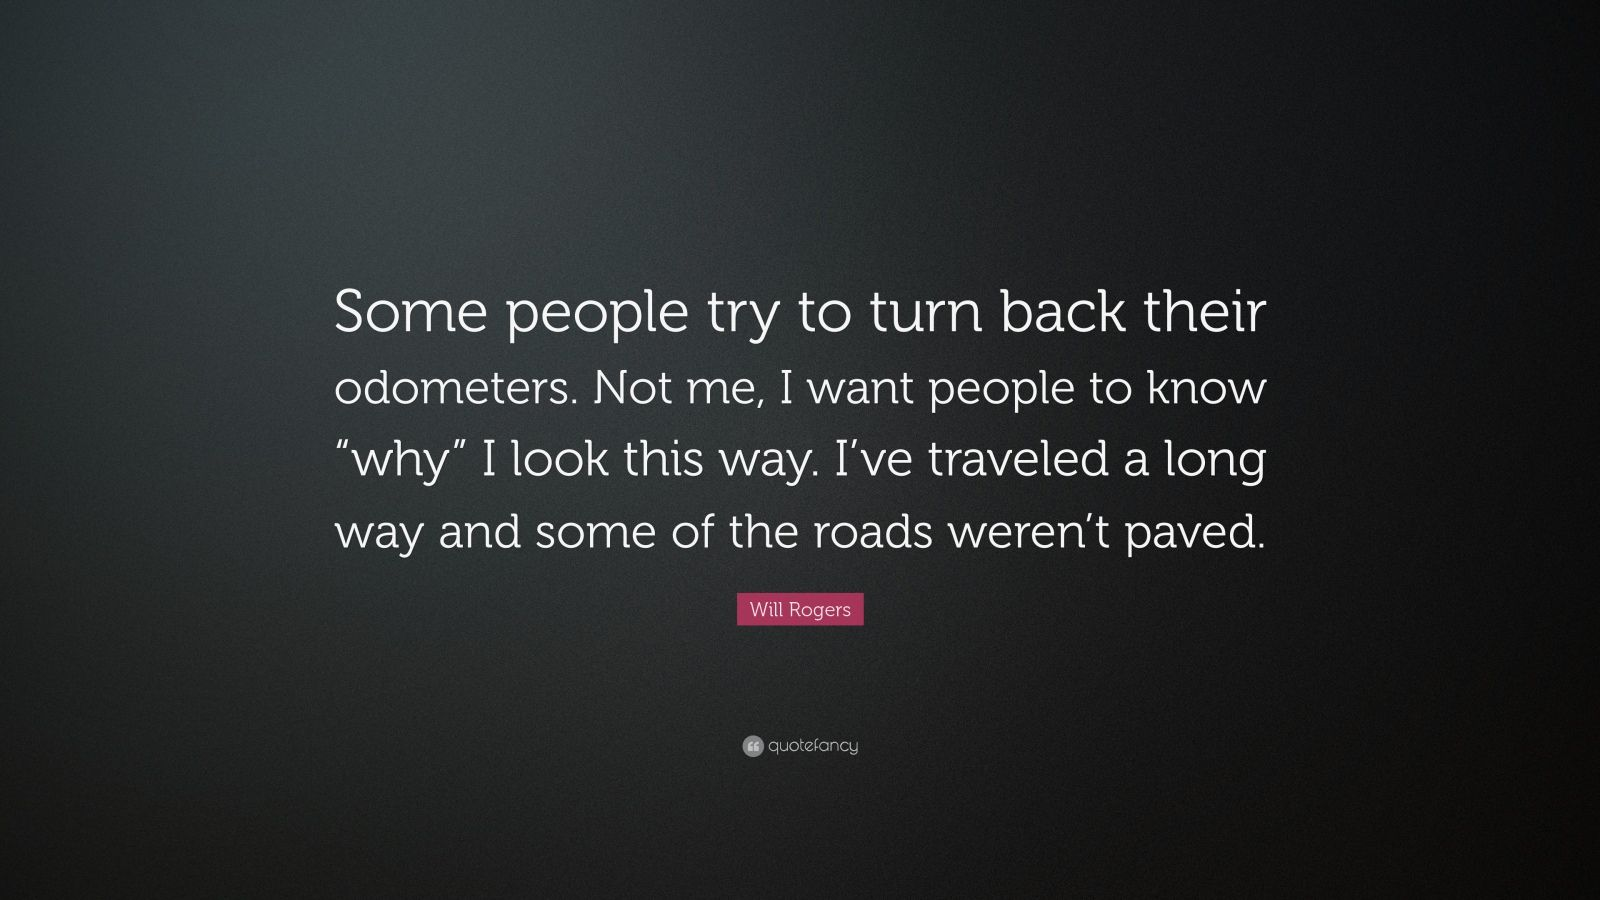 """Will Rogers Quote: """"Some people try to turn back their odometers. Not me, I want people to know """"why"""" I look this way. I've traveled a long way and some of the roads weren't paved."""""""